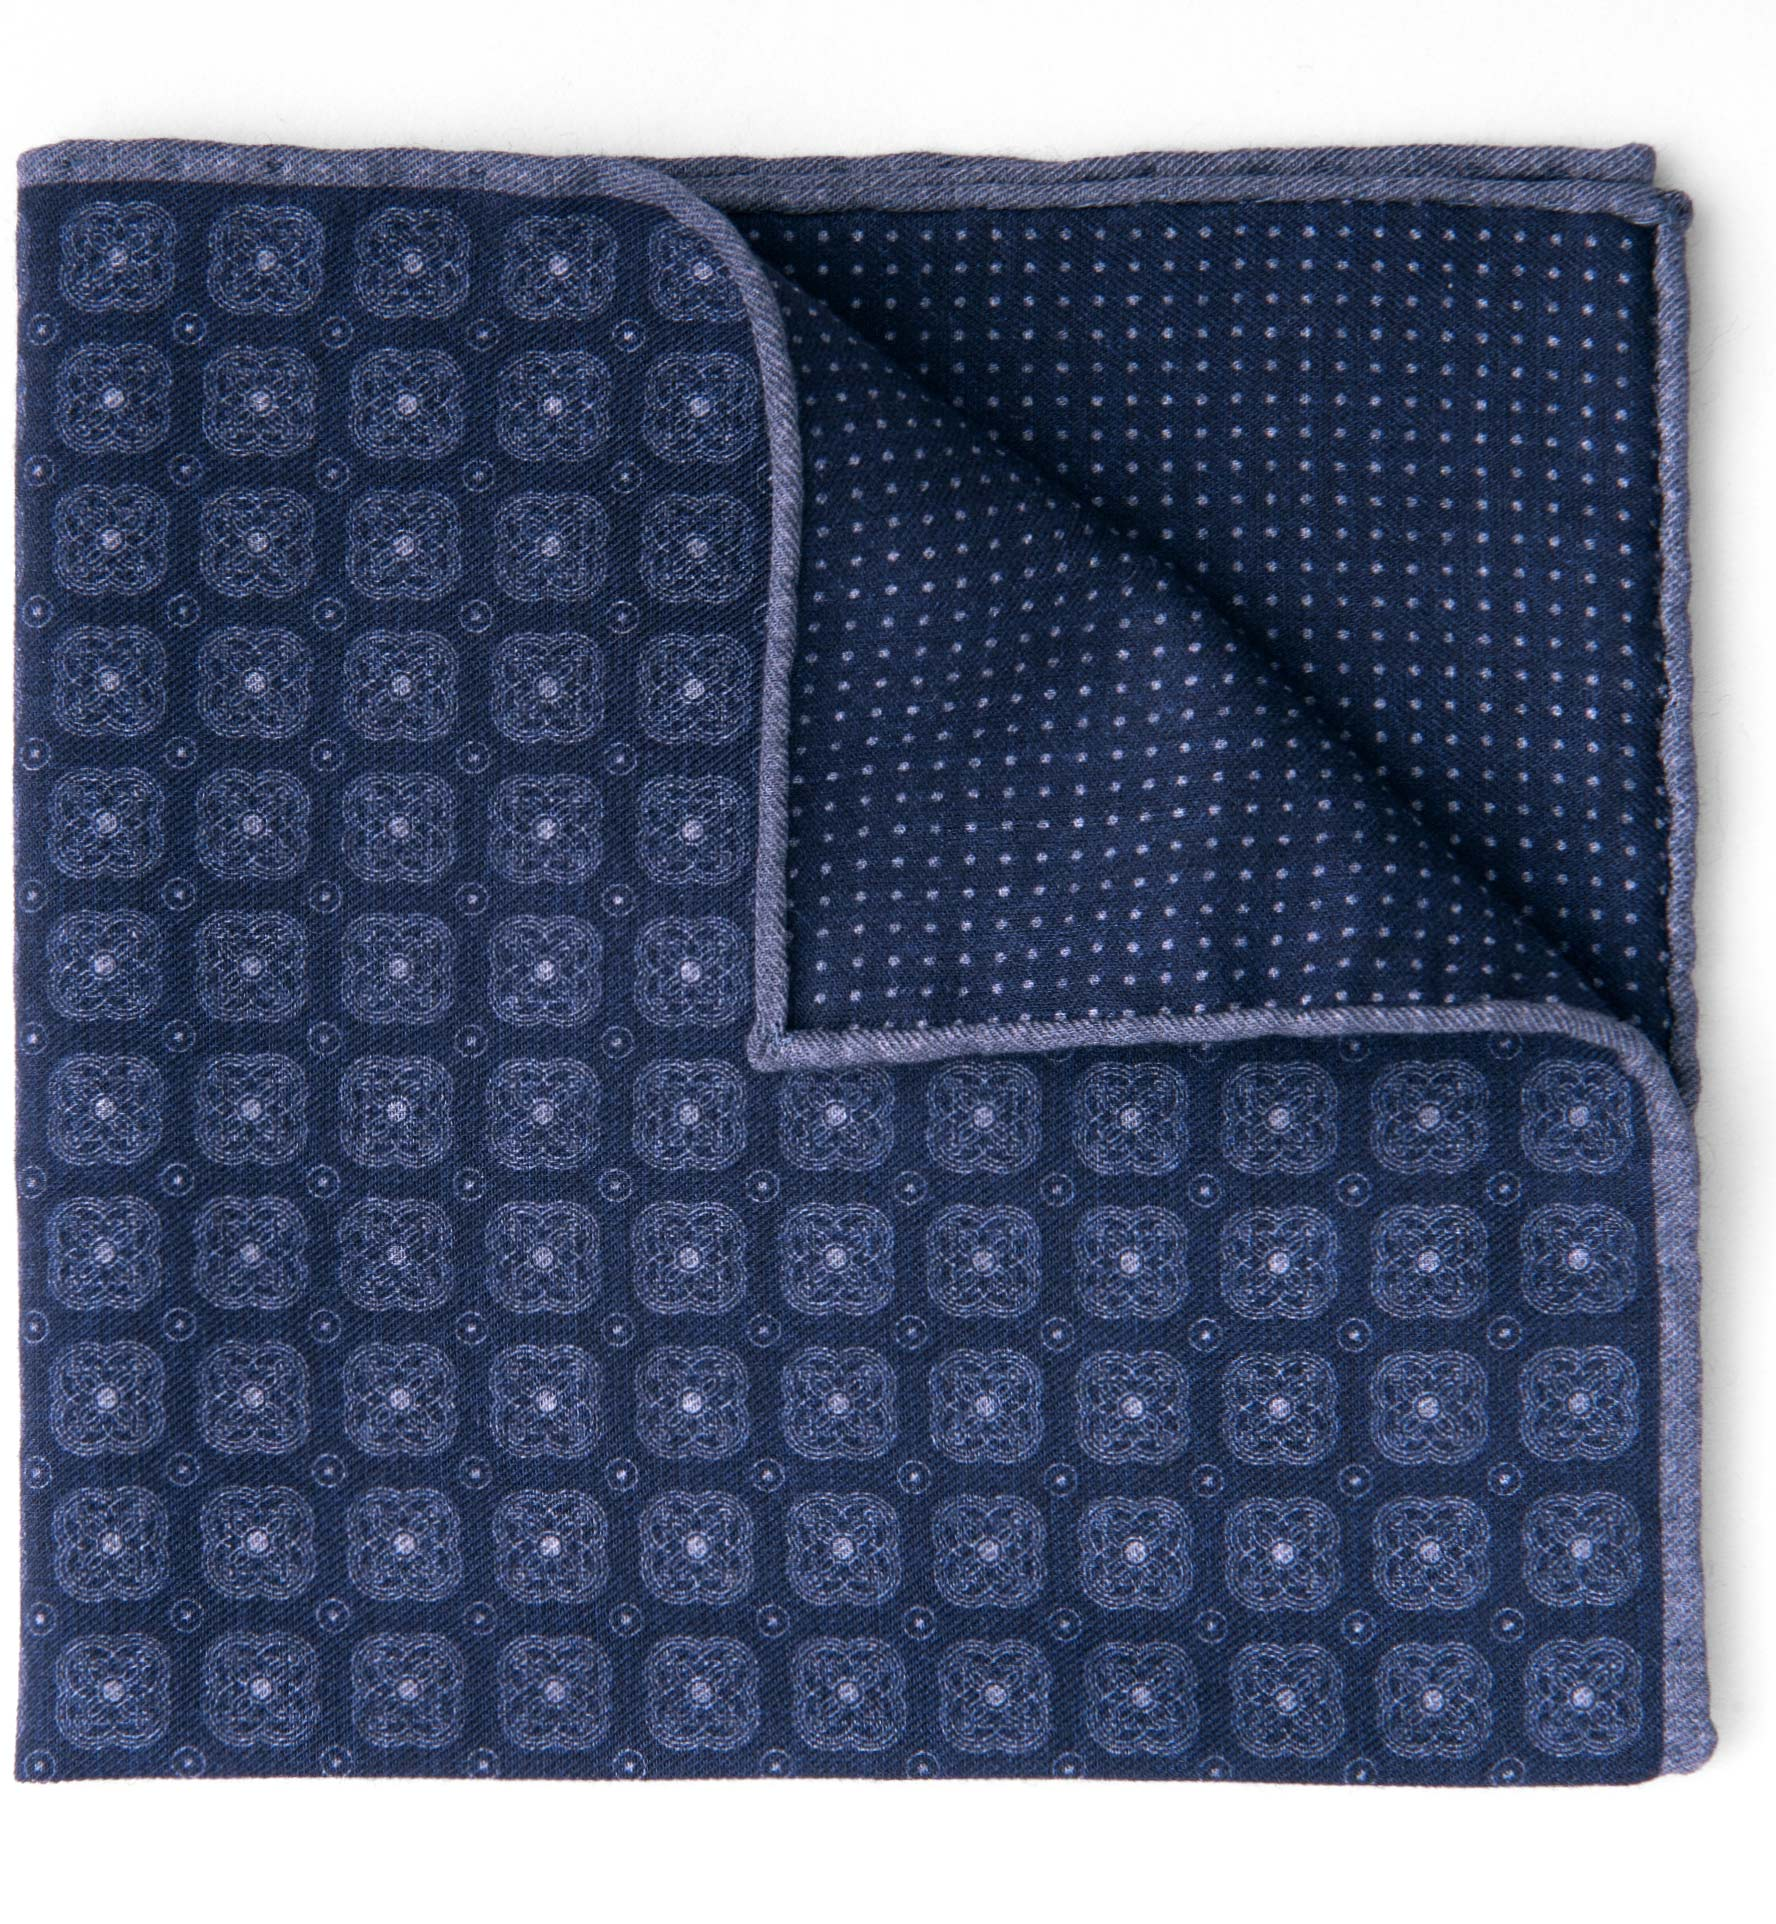 Zoom Image of Navy Printed Cotton and Wool Square